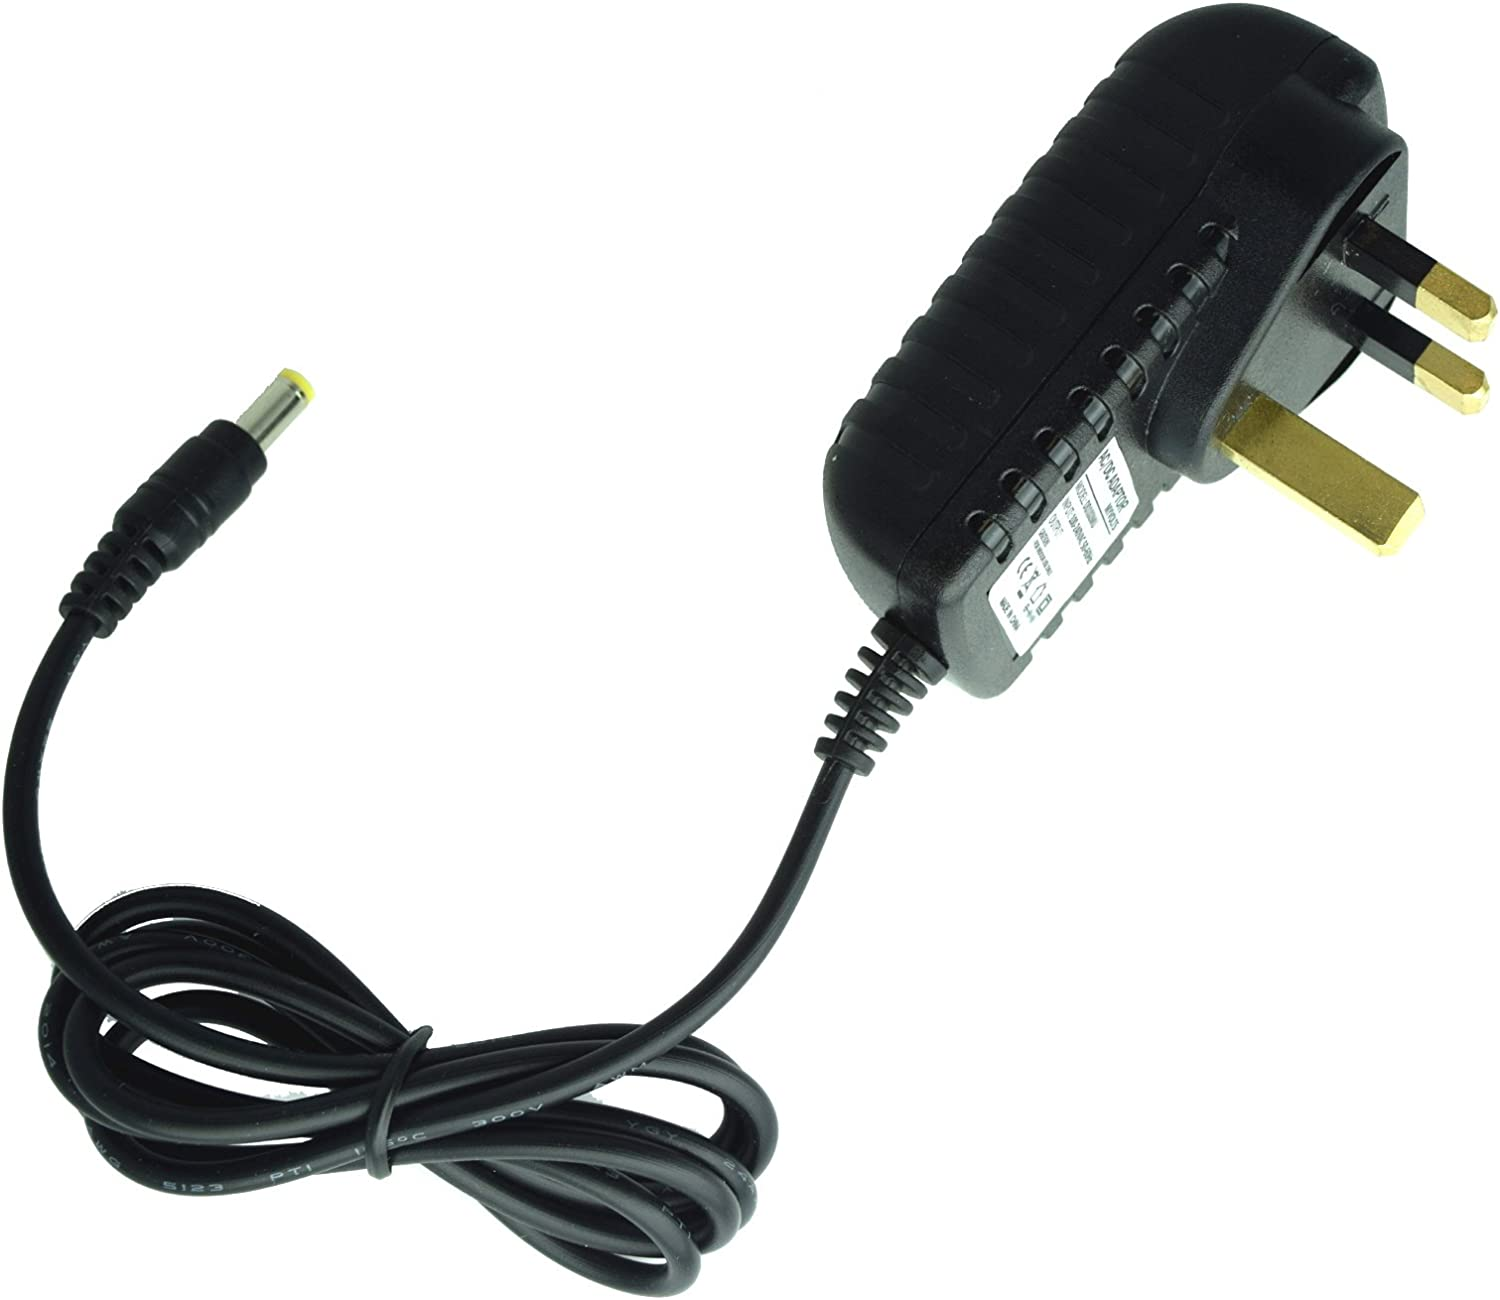 MyVolts 6V in-car Power Supply Adaptor Compatible with Icom BC-07 PSU Part